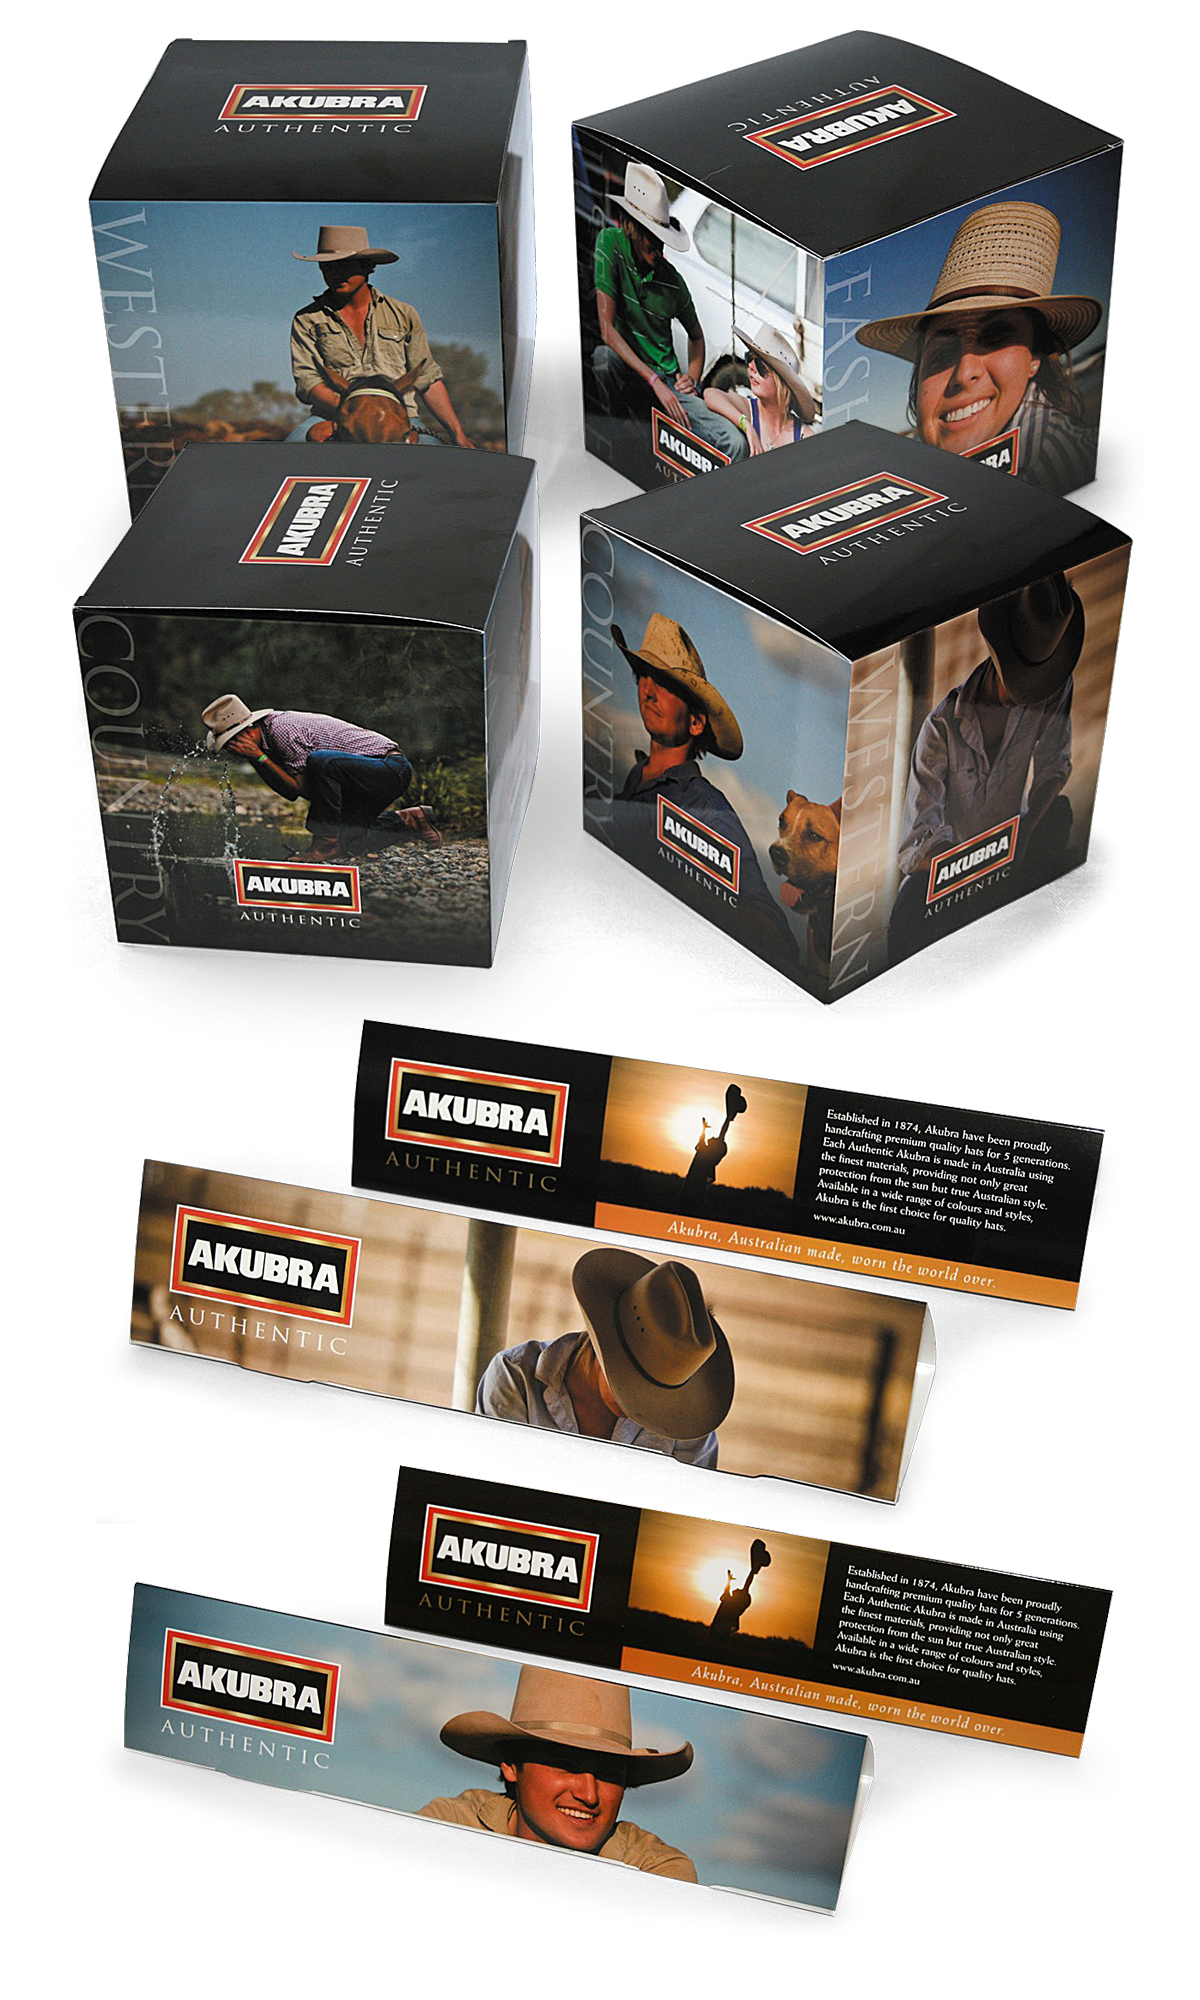 Akubra Display Boxes and Tent Cards